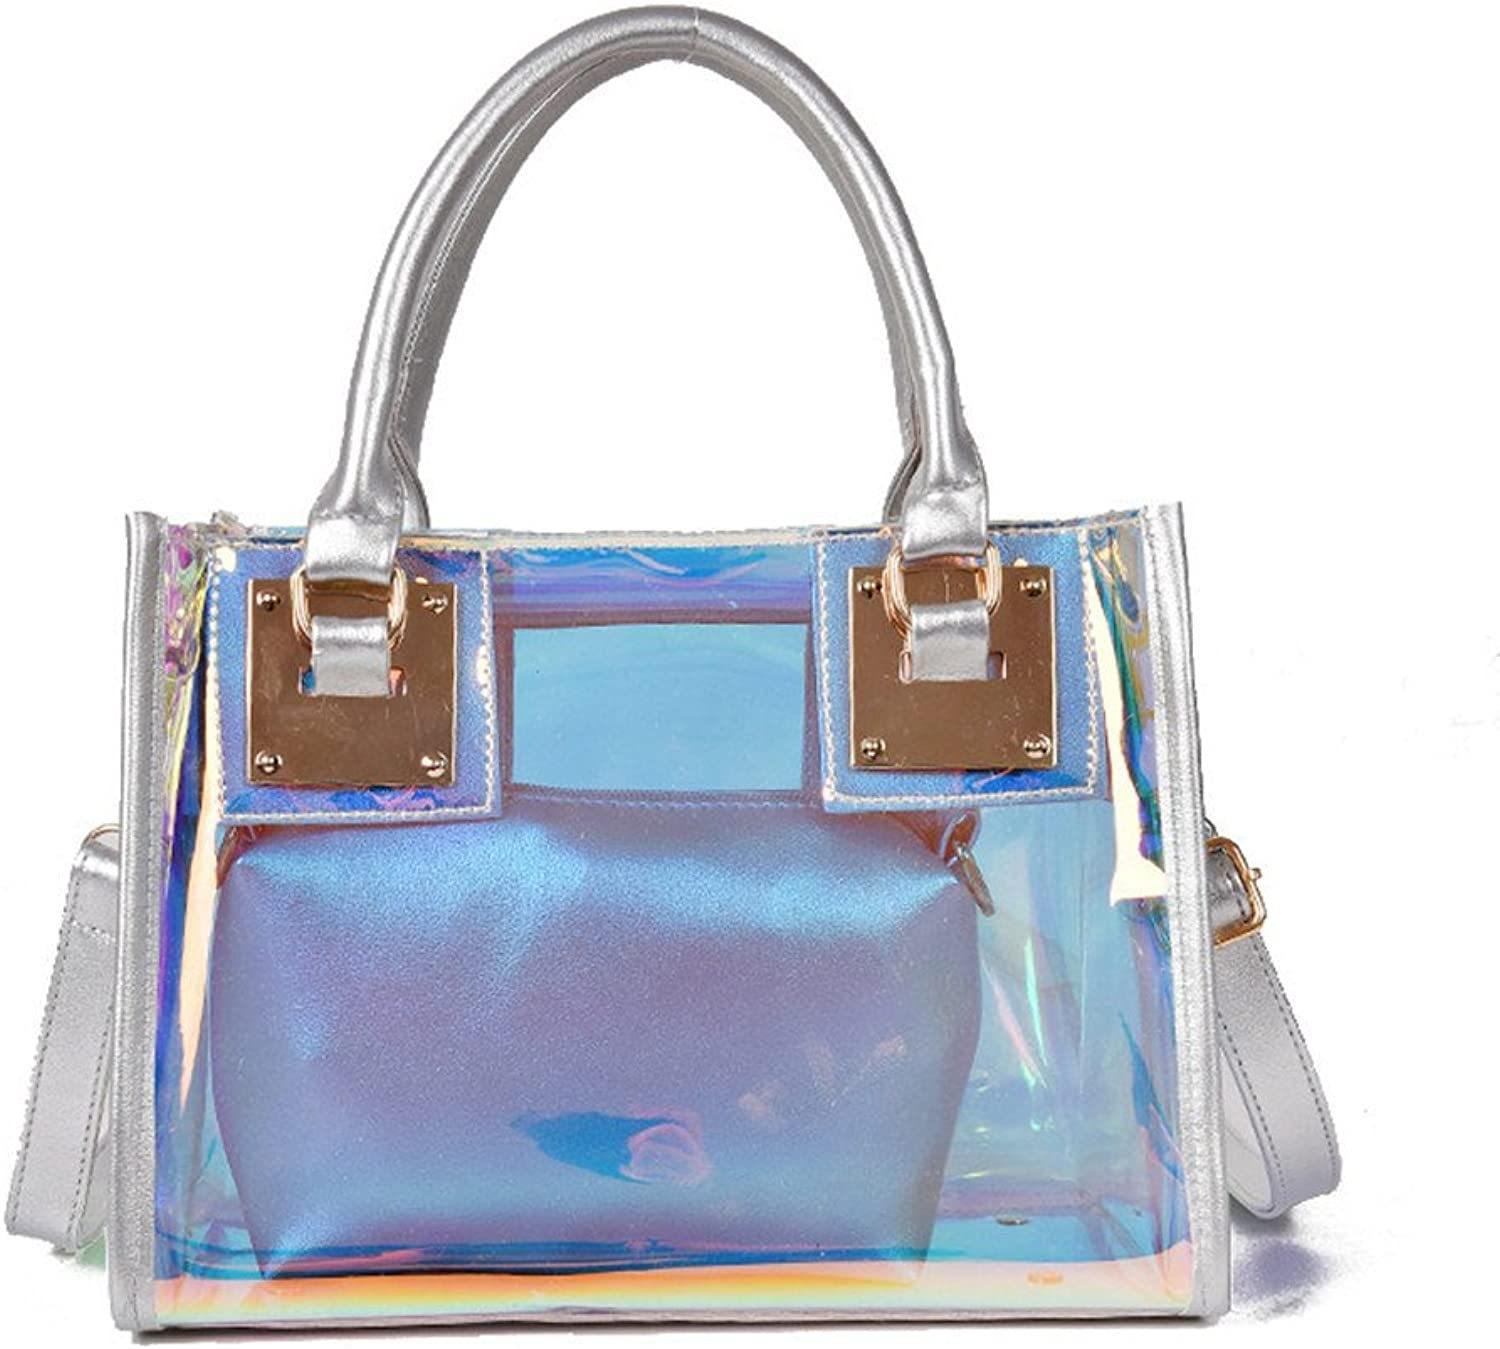 Marchome 2-in-1 Hologram Top Handle Handbag Crossbody Shoulder Bag